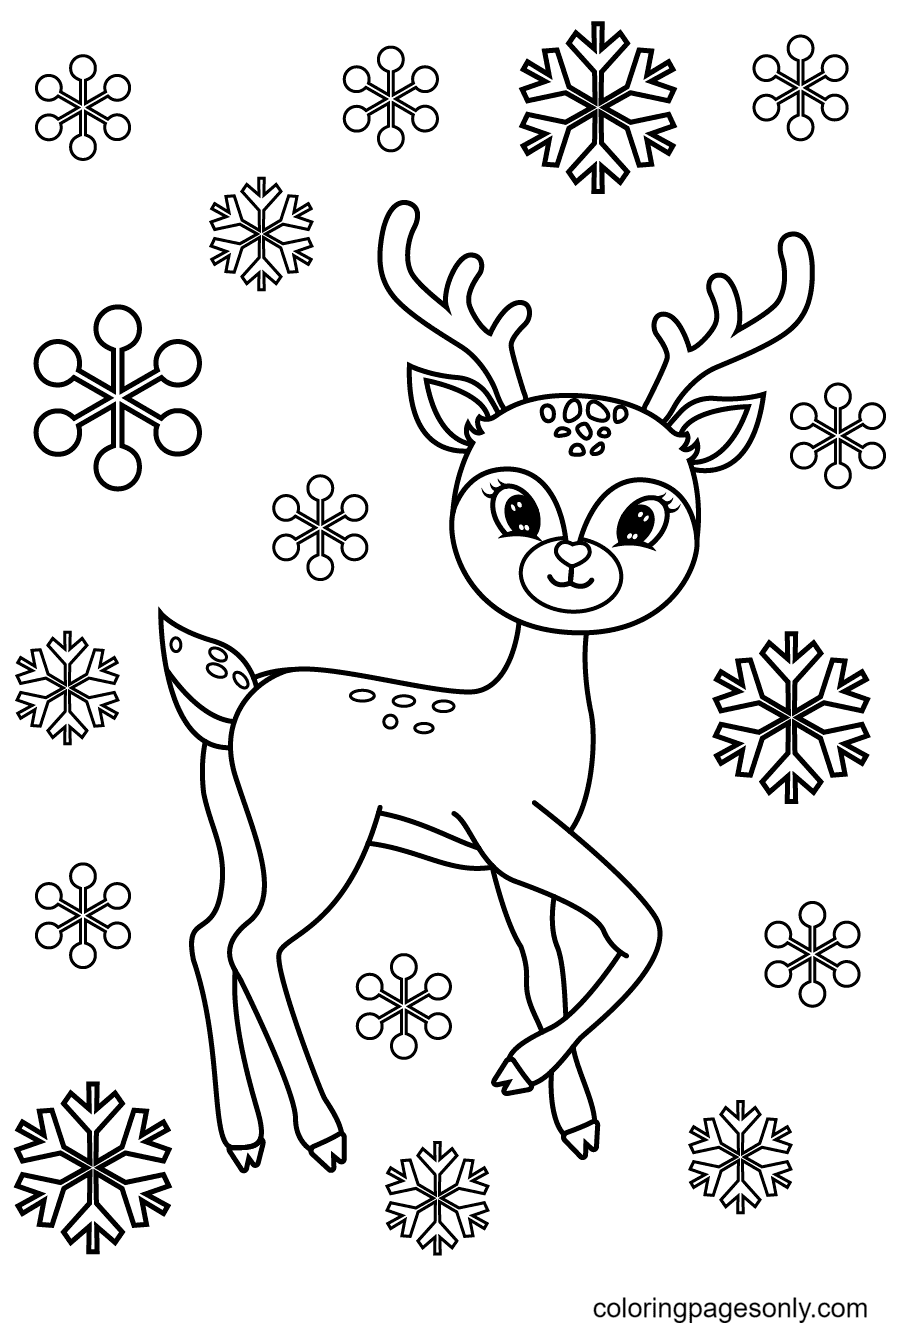 Reindeer With Snowflakes Coloring Page